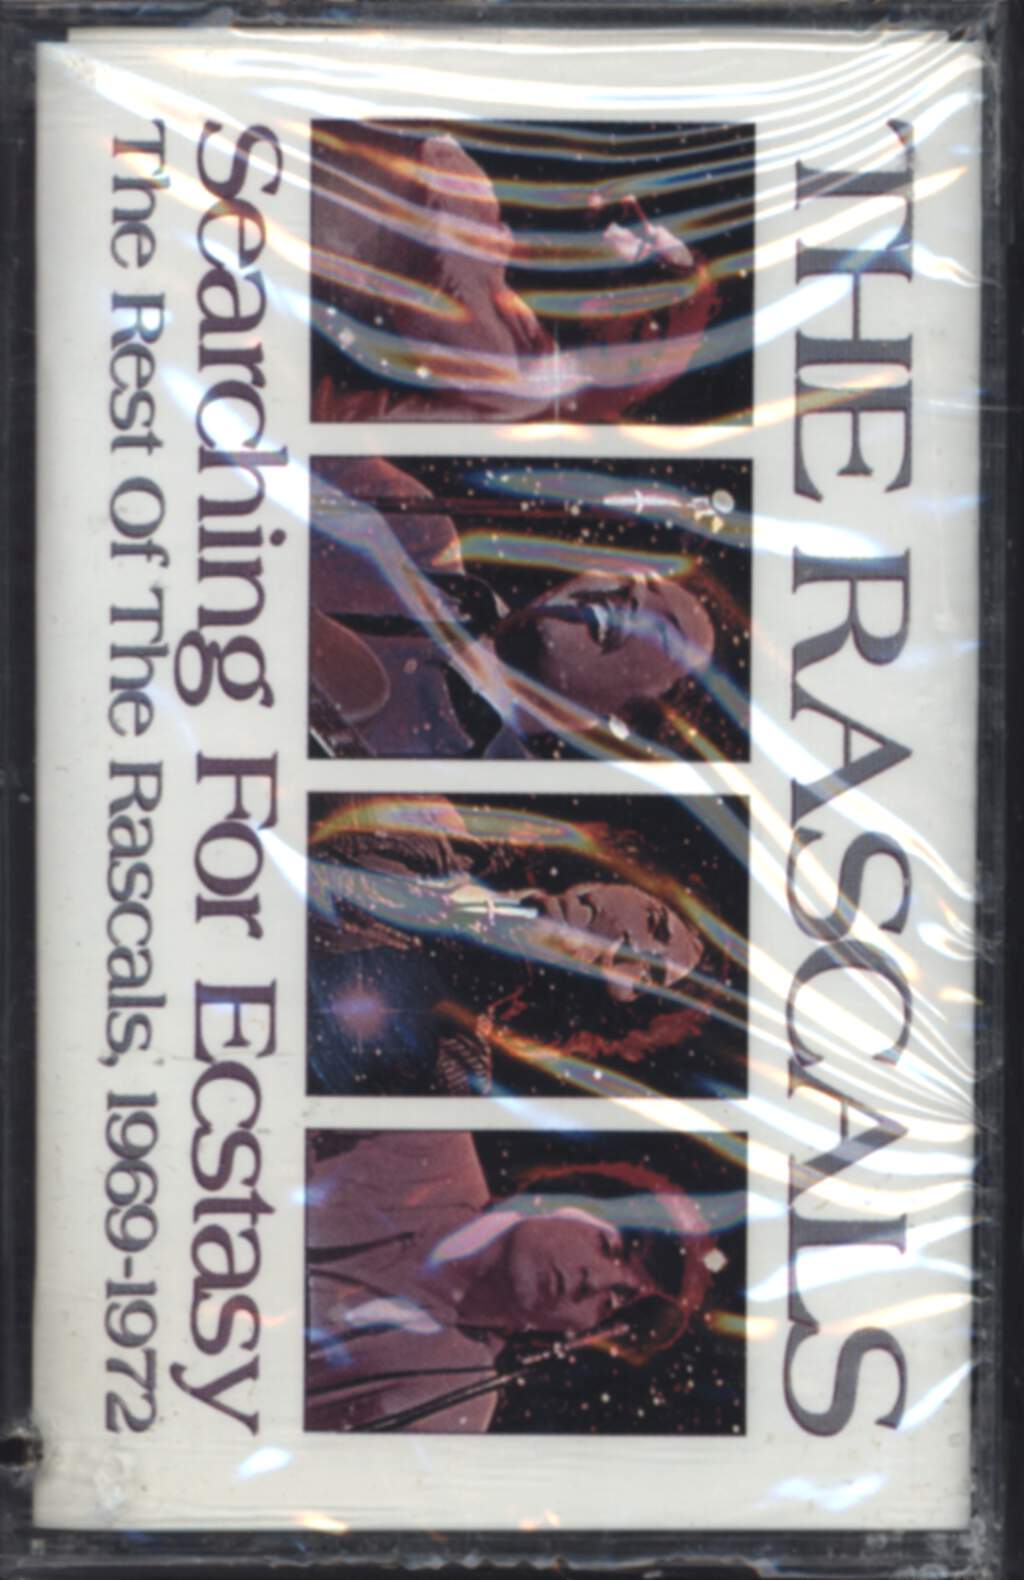 The Rascals: Searching For Ecstasy - The Rest Of The Rascals, 1969-1972, Compact Cassette